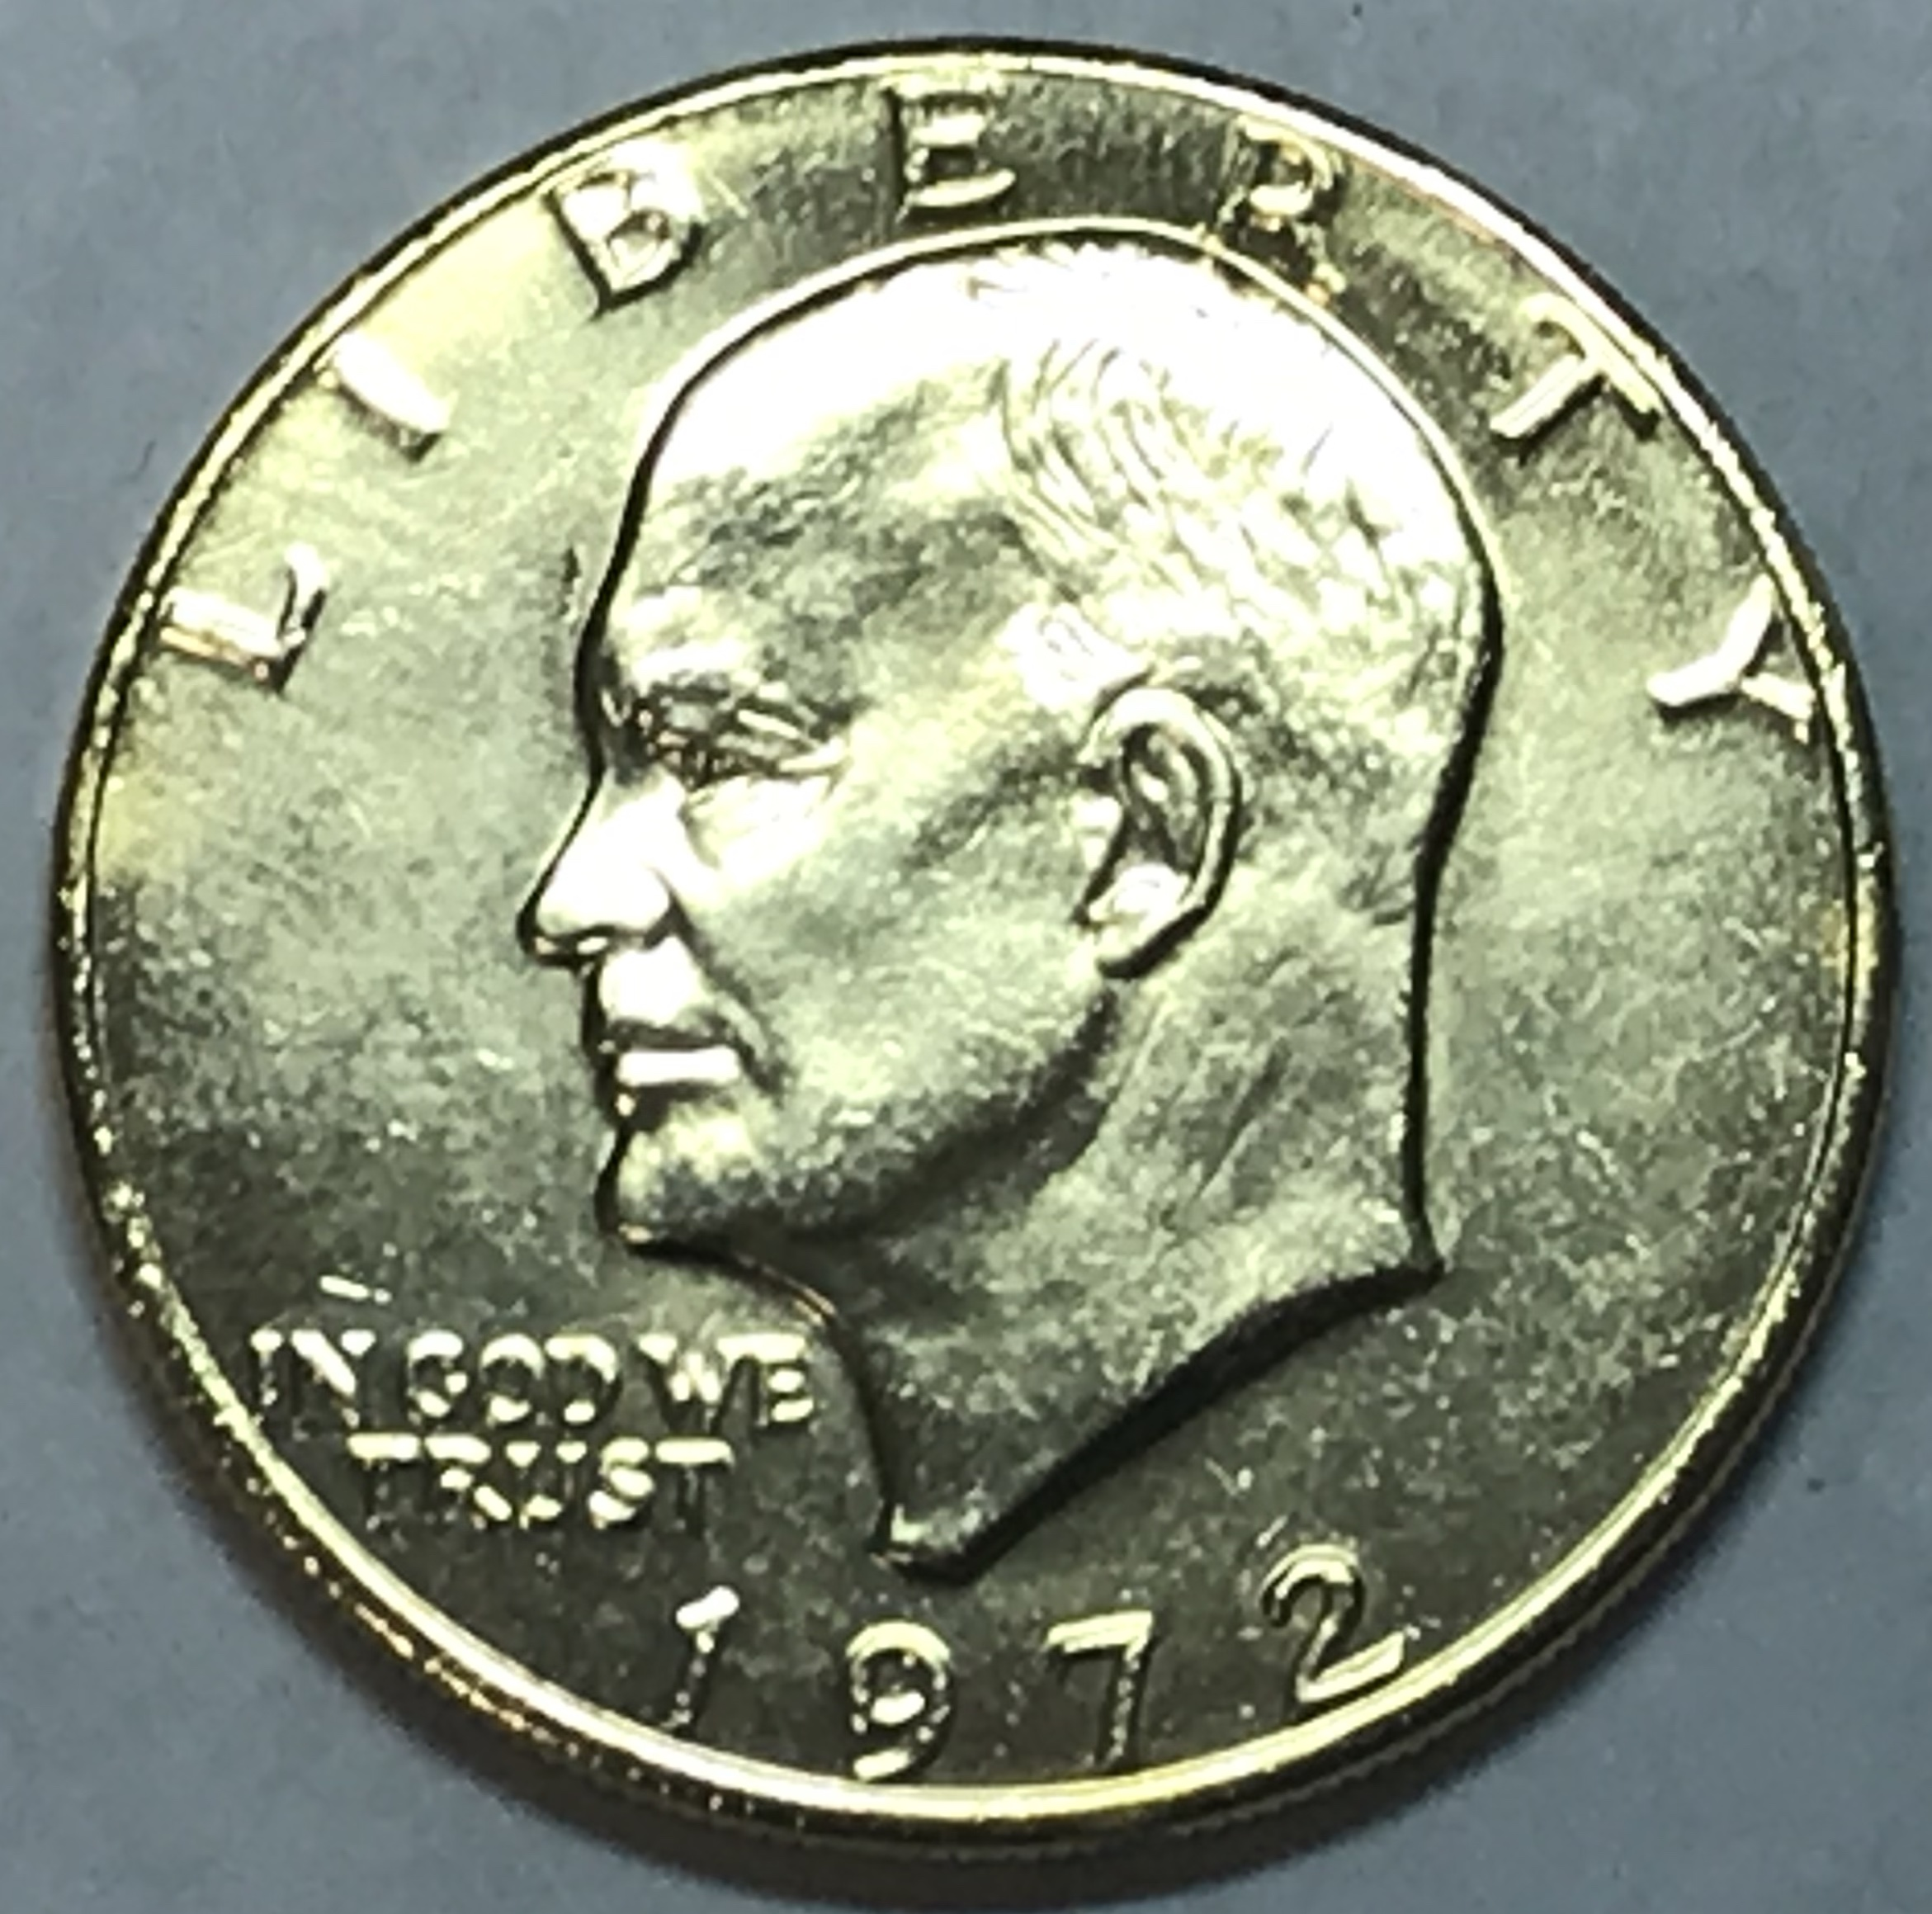 1972 Eisenhower  Dollar Coin  With Apollo Insignia Excellent   Condition